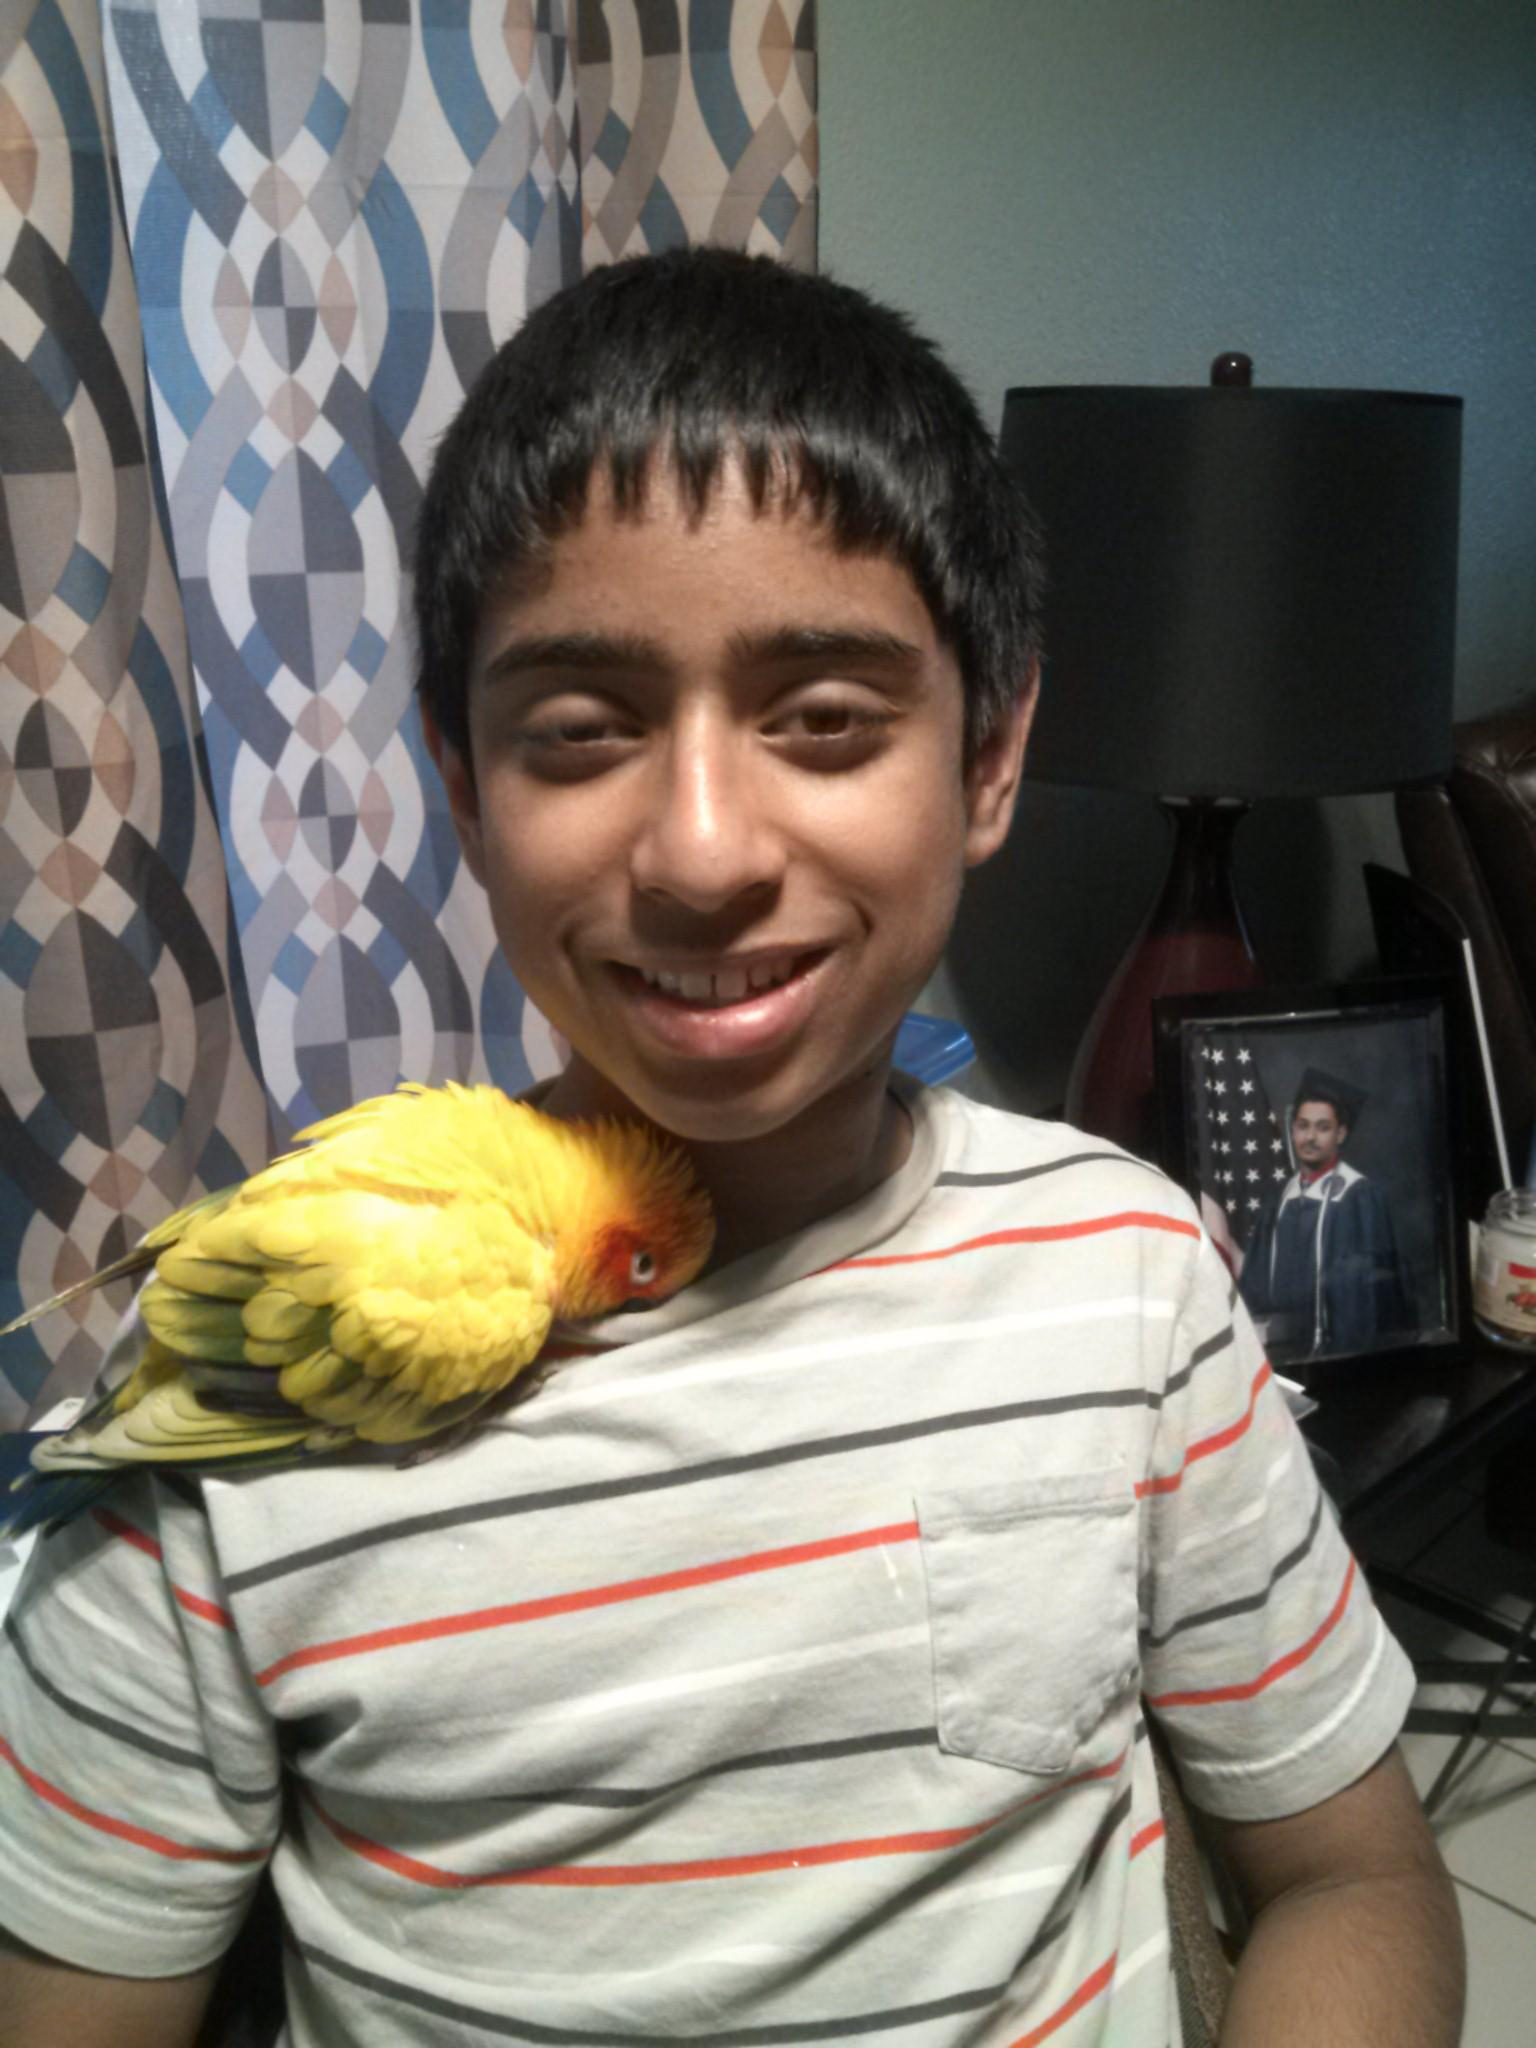 Ryan and his bird